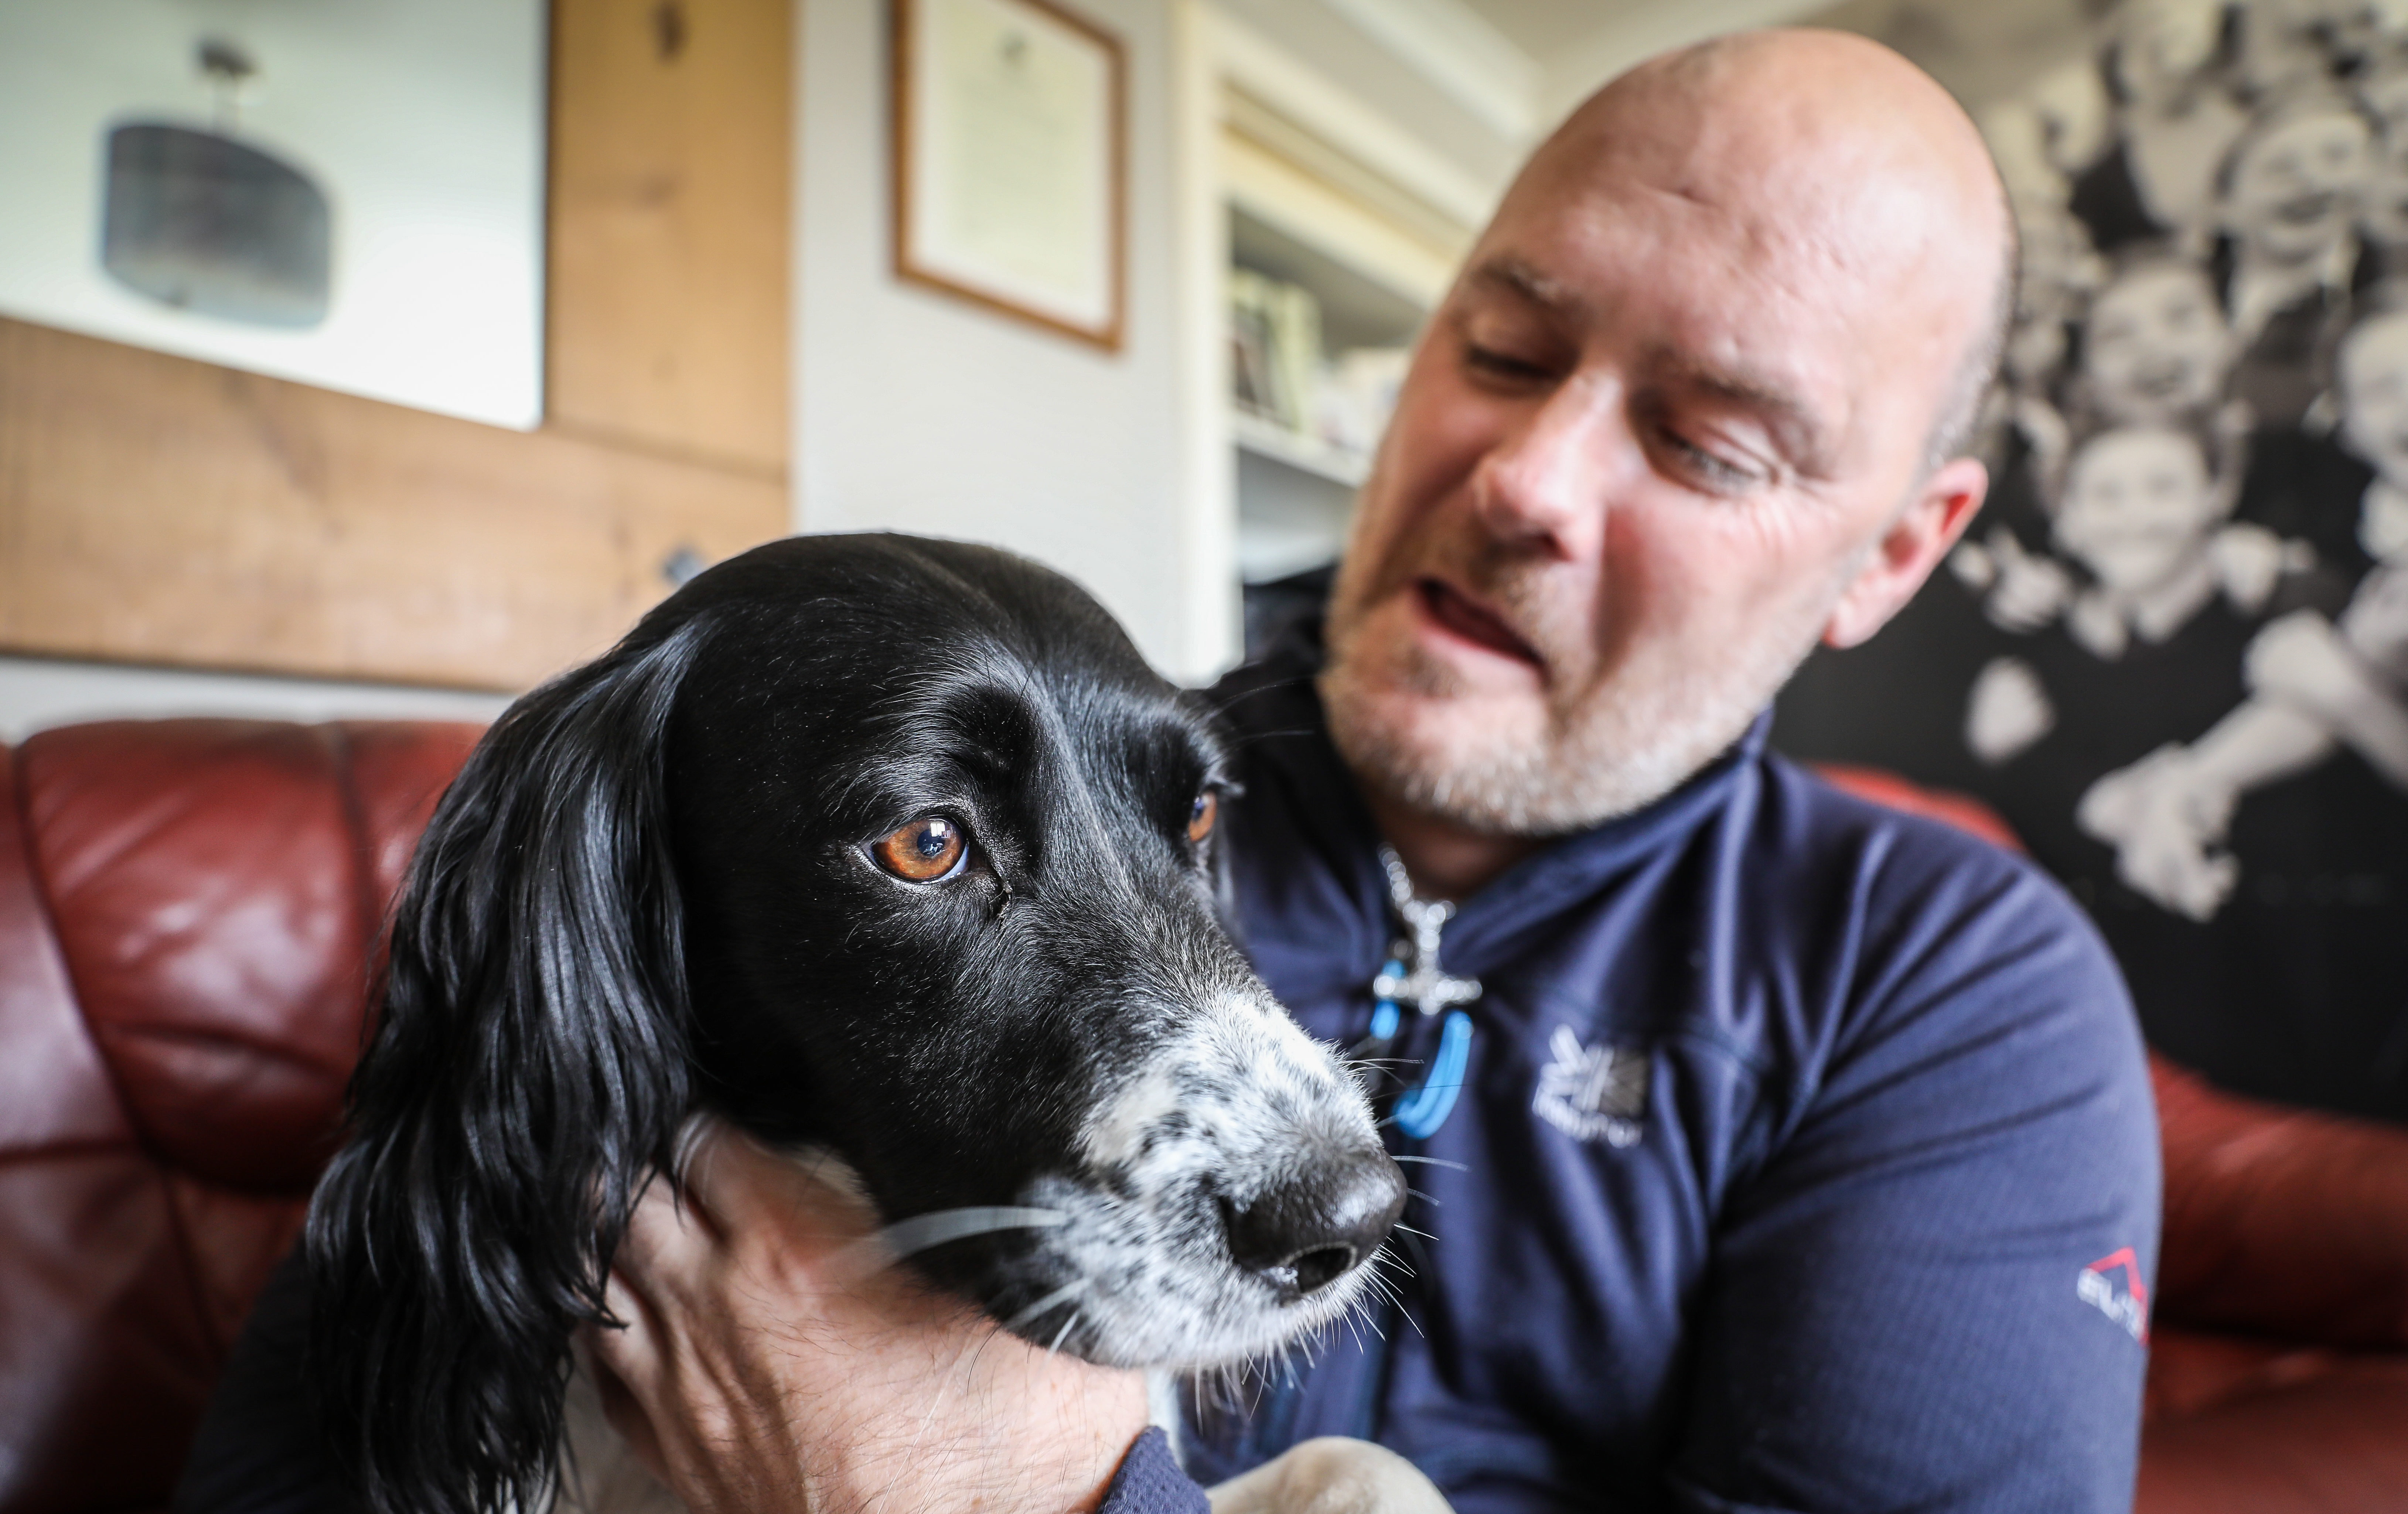 Paul Wilkie was refused service in Tesco while with his PTSD dog Irma.